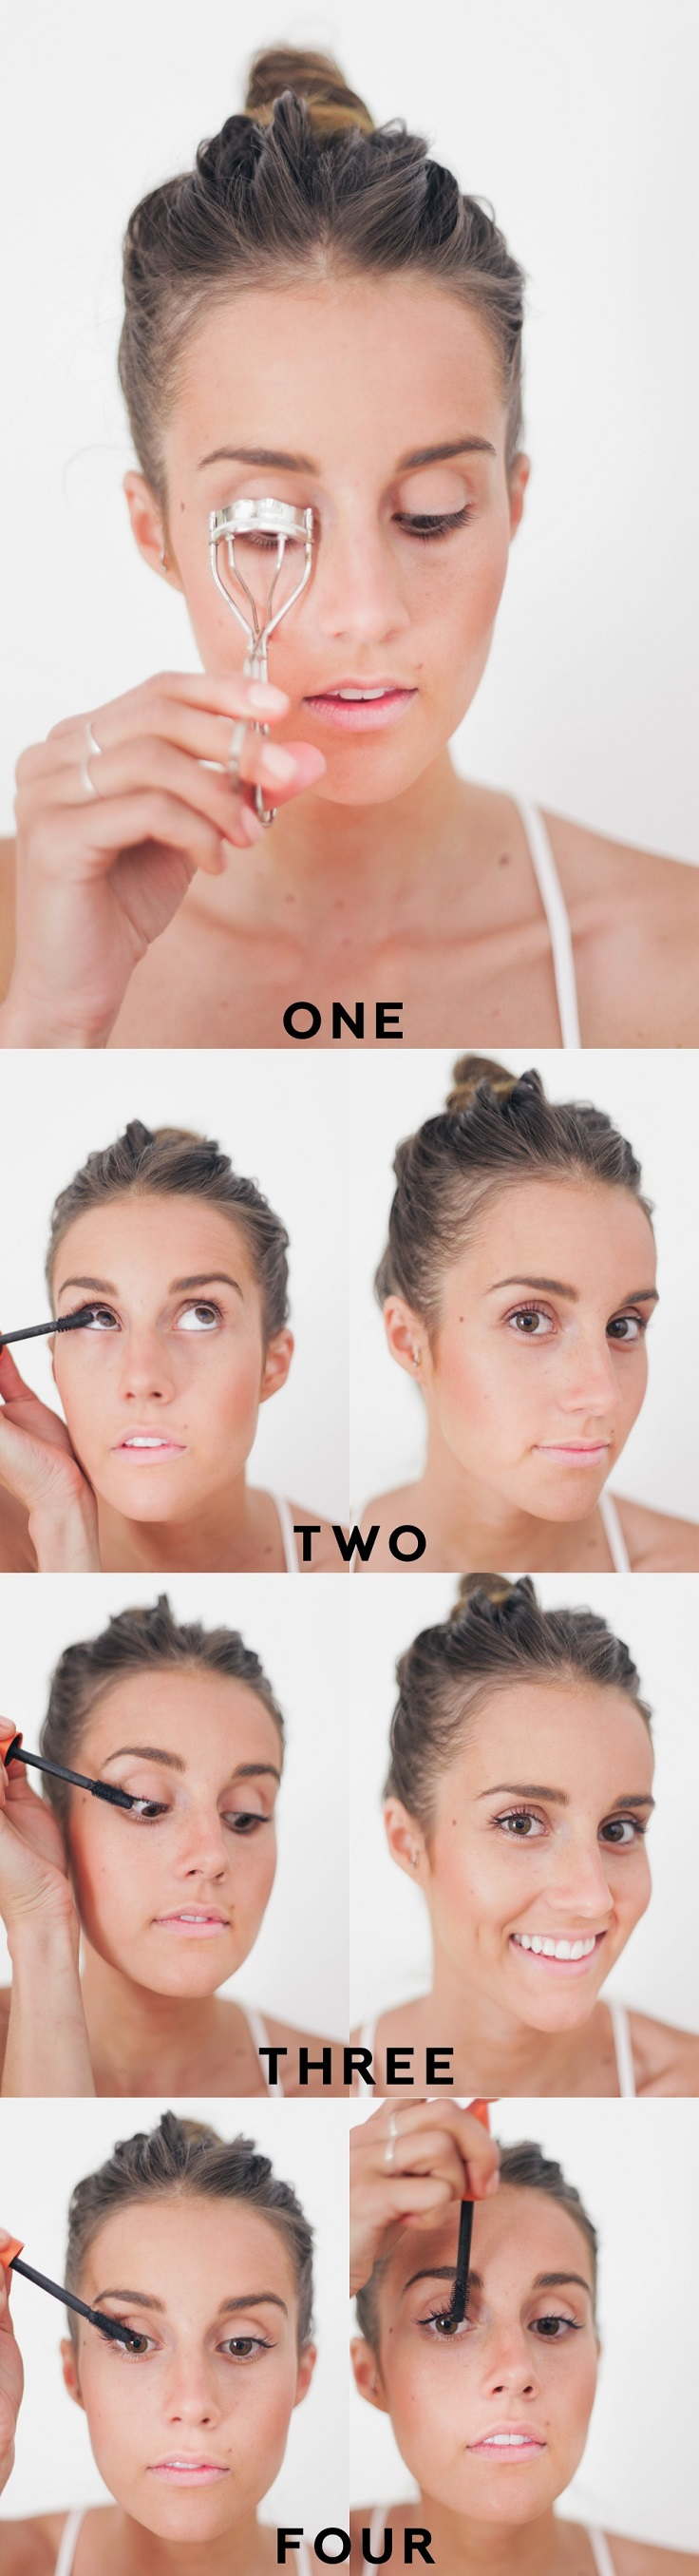 Top 10 Tips On How To Make Your Eyelashes Look Longer ...